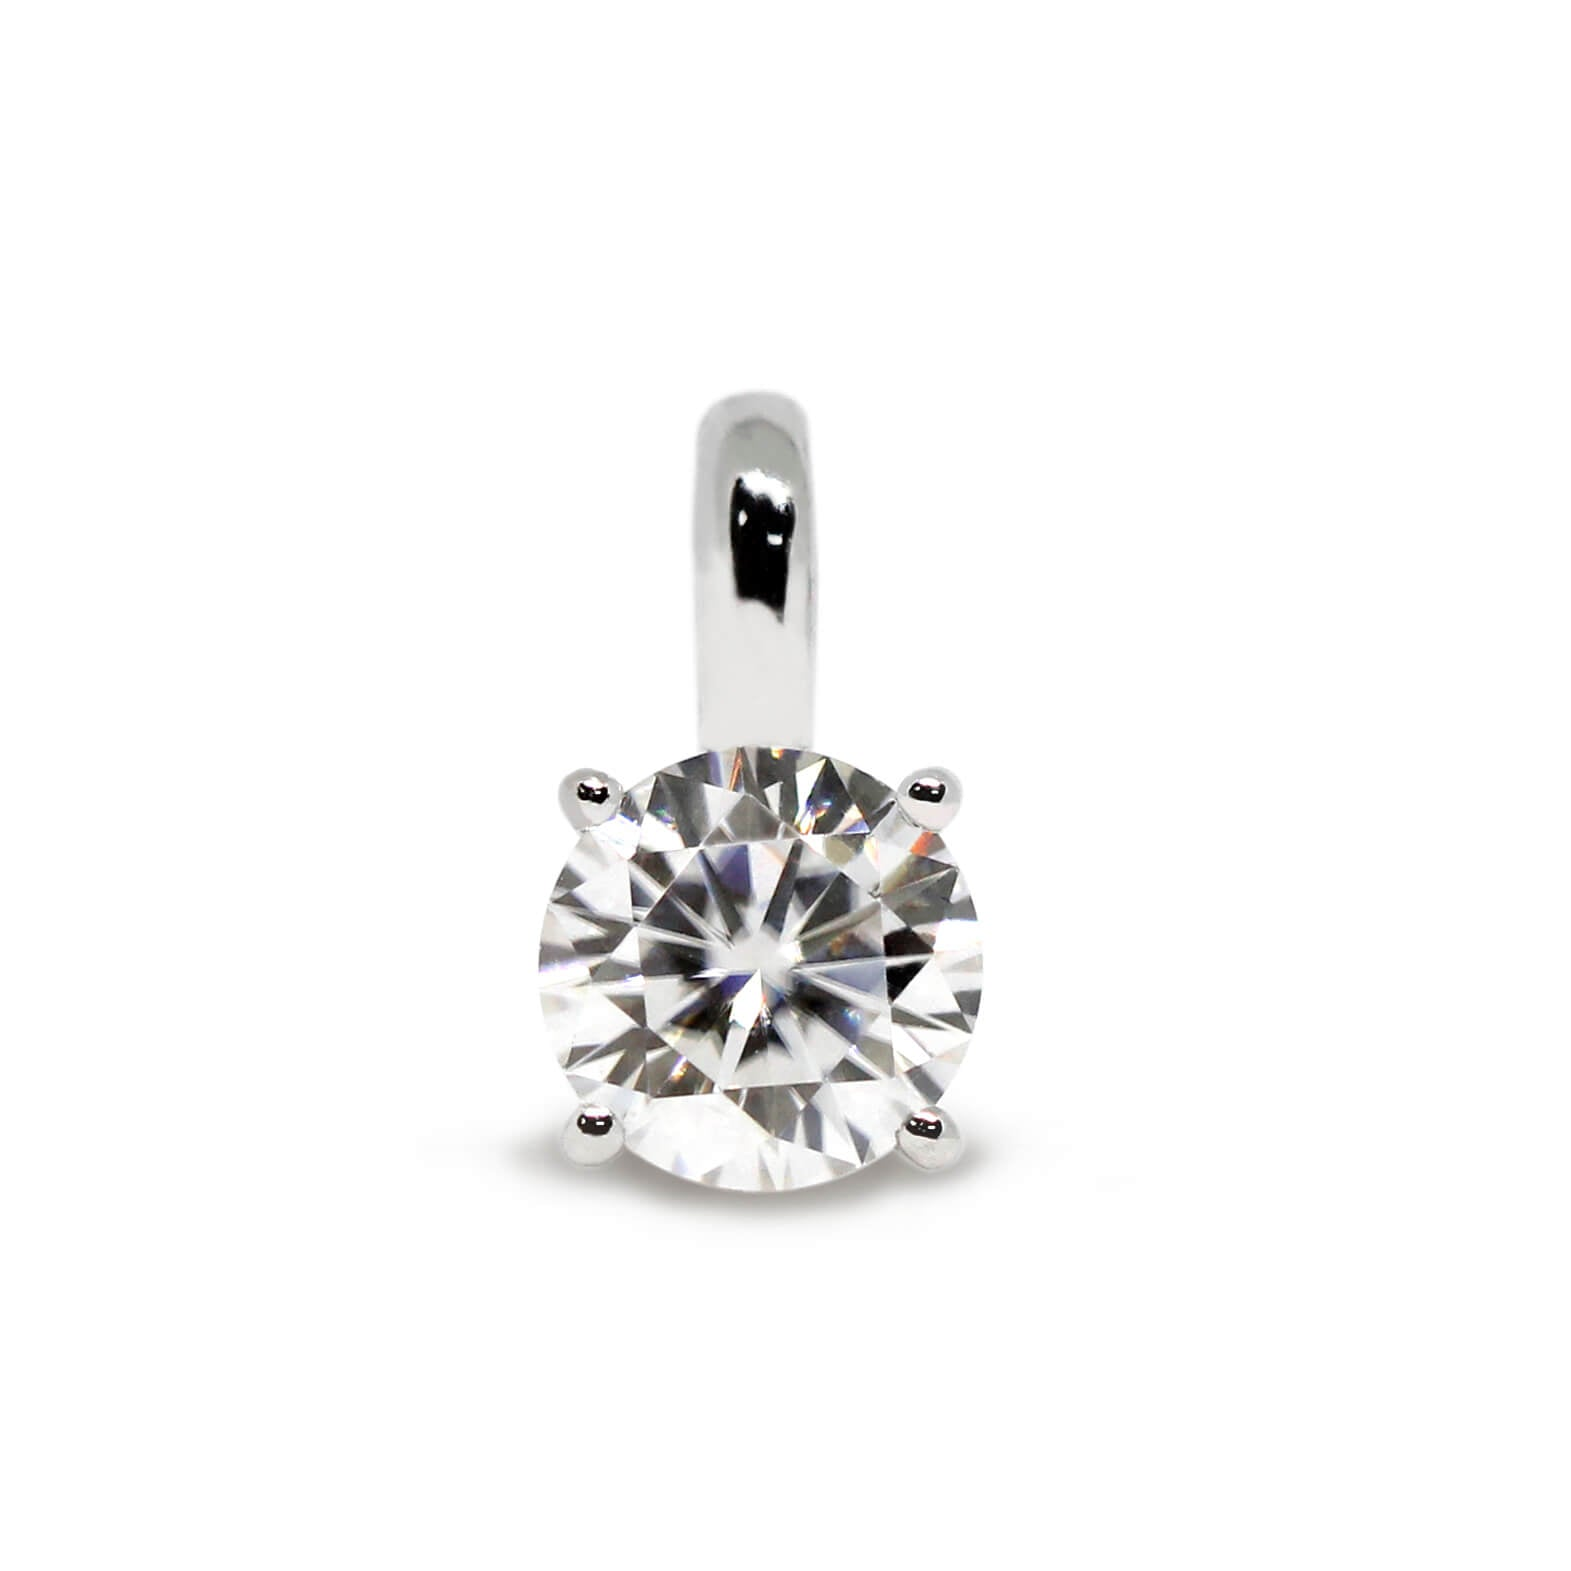 Light Grey Moissanite Round Solitaire 18K Gold Pendant